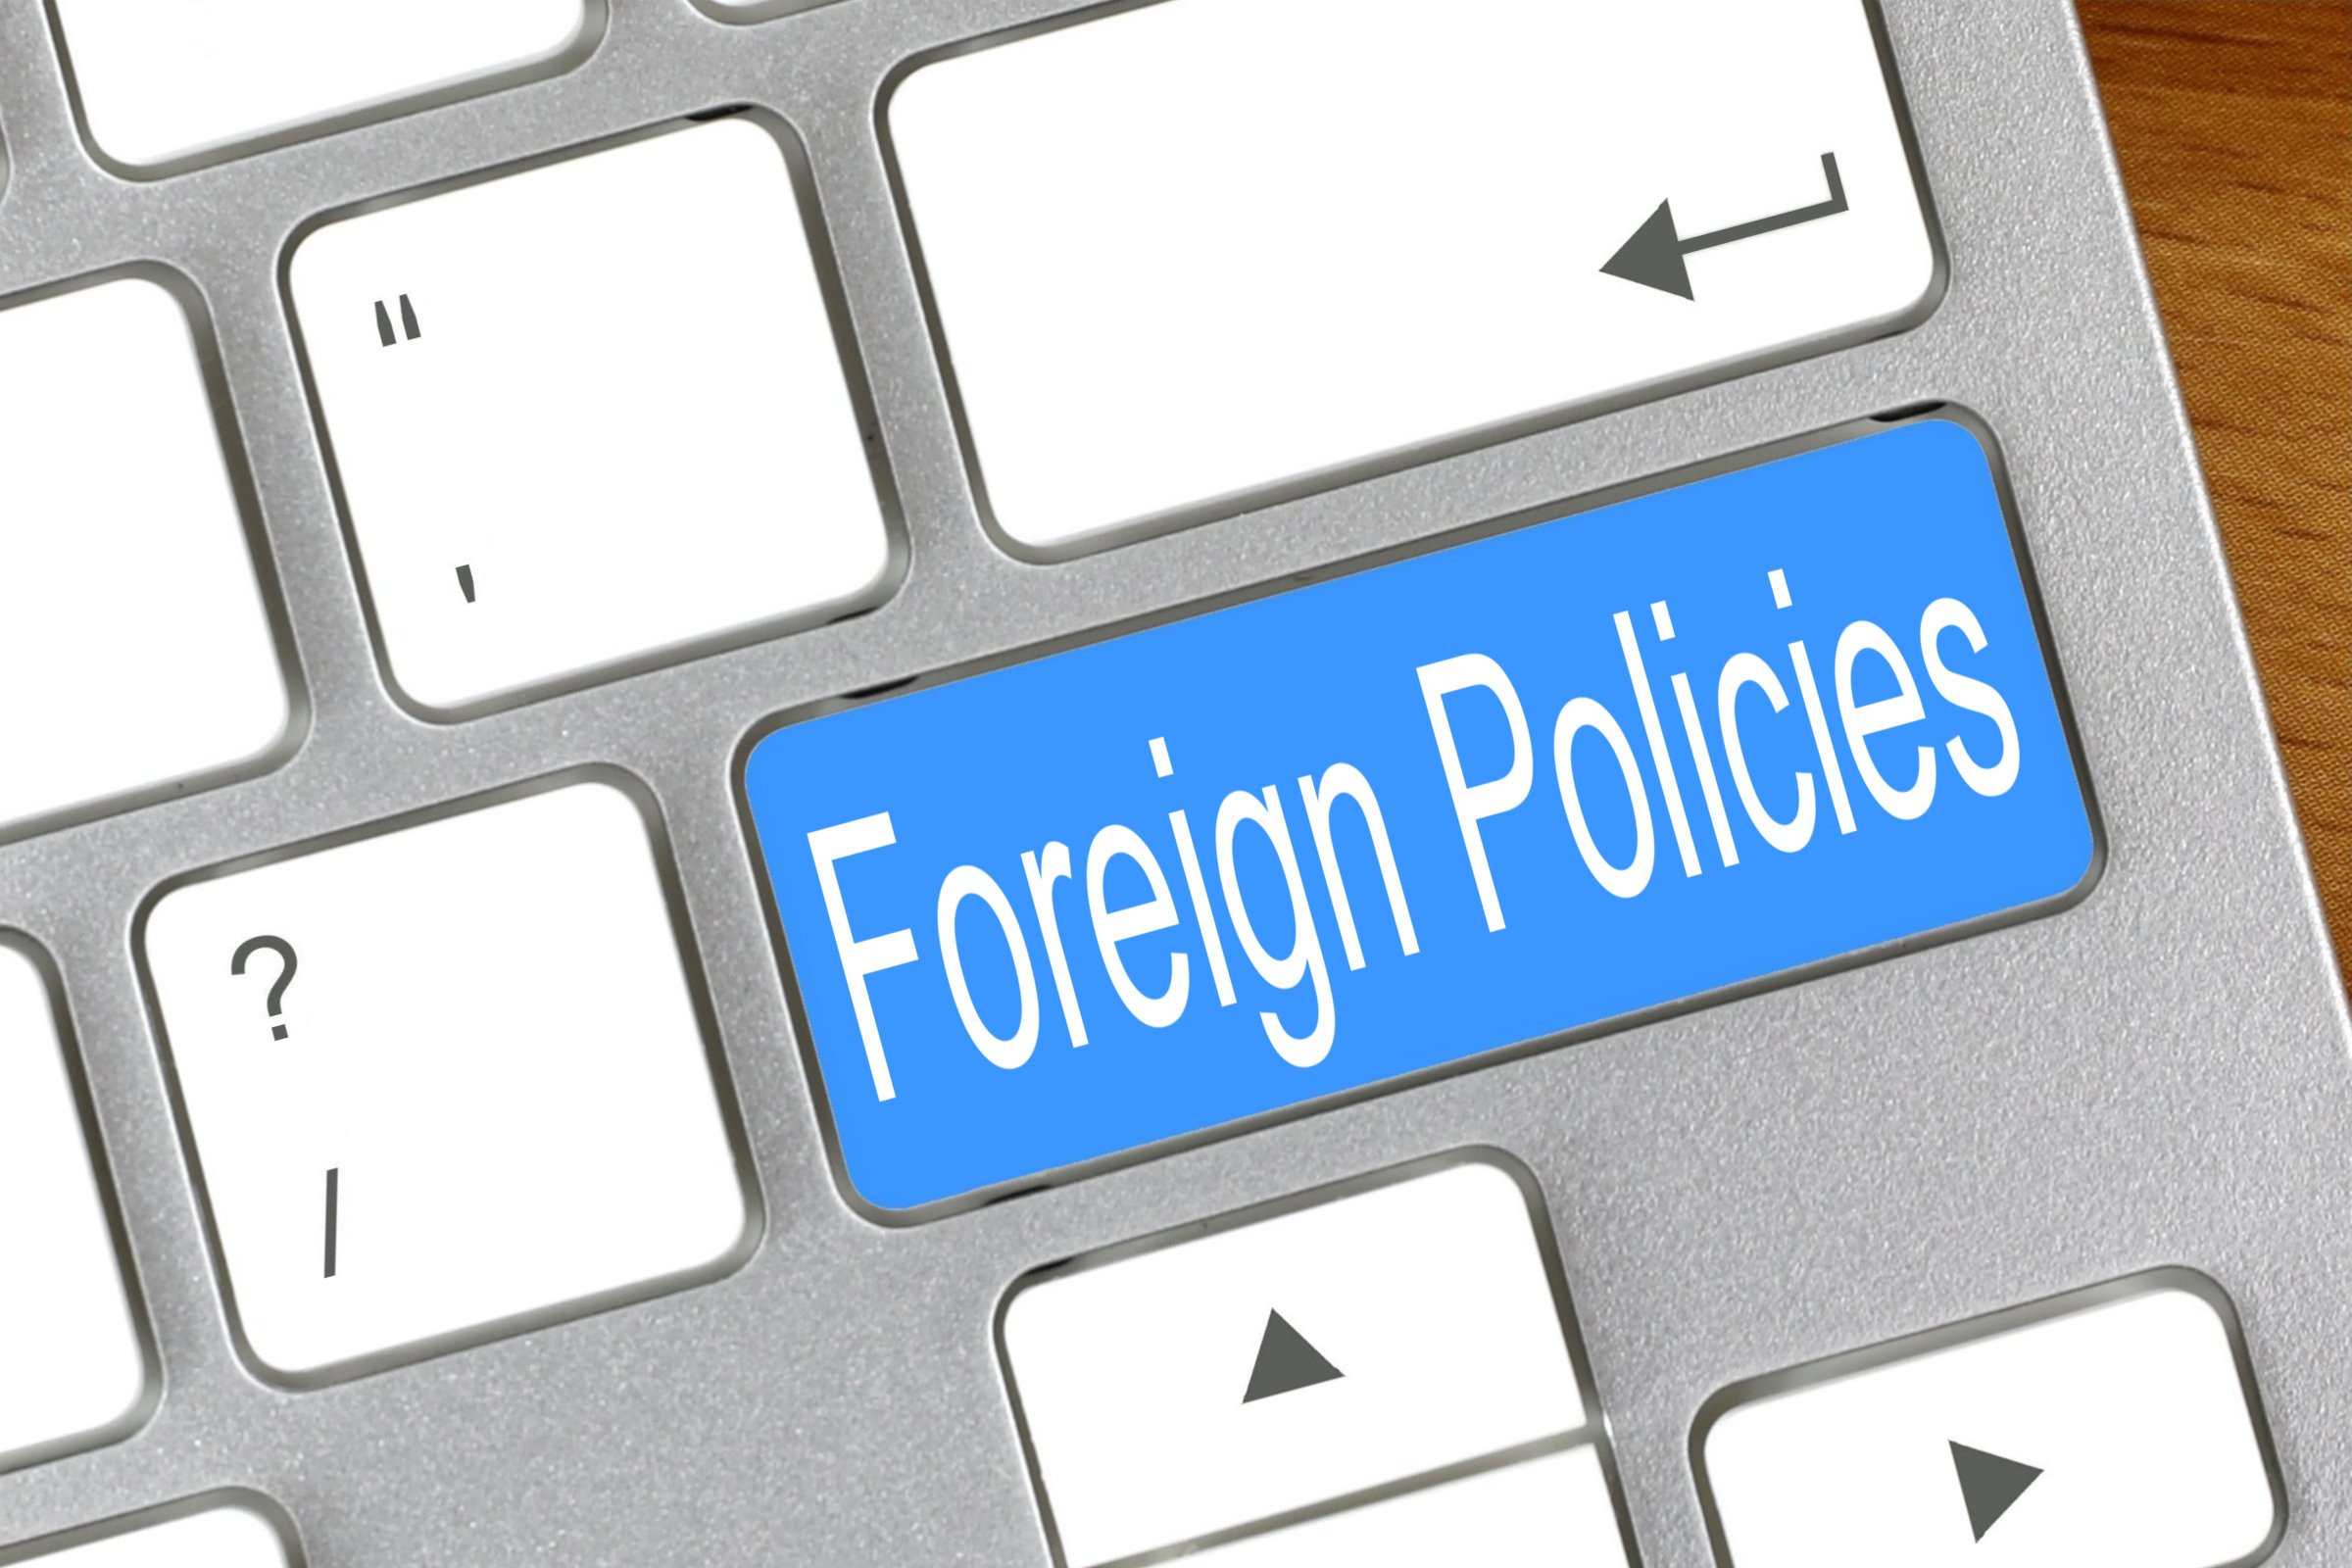 Foreign Policies